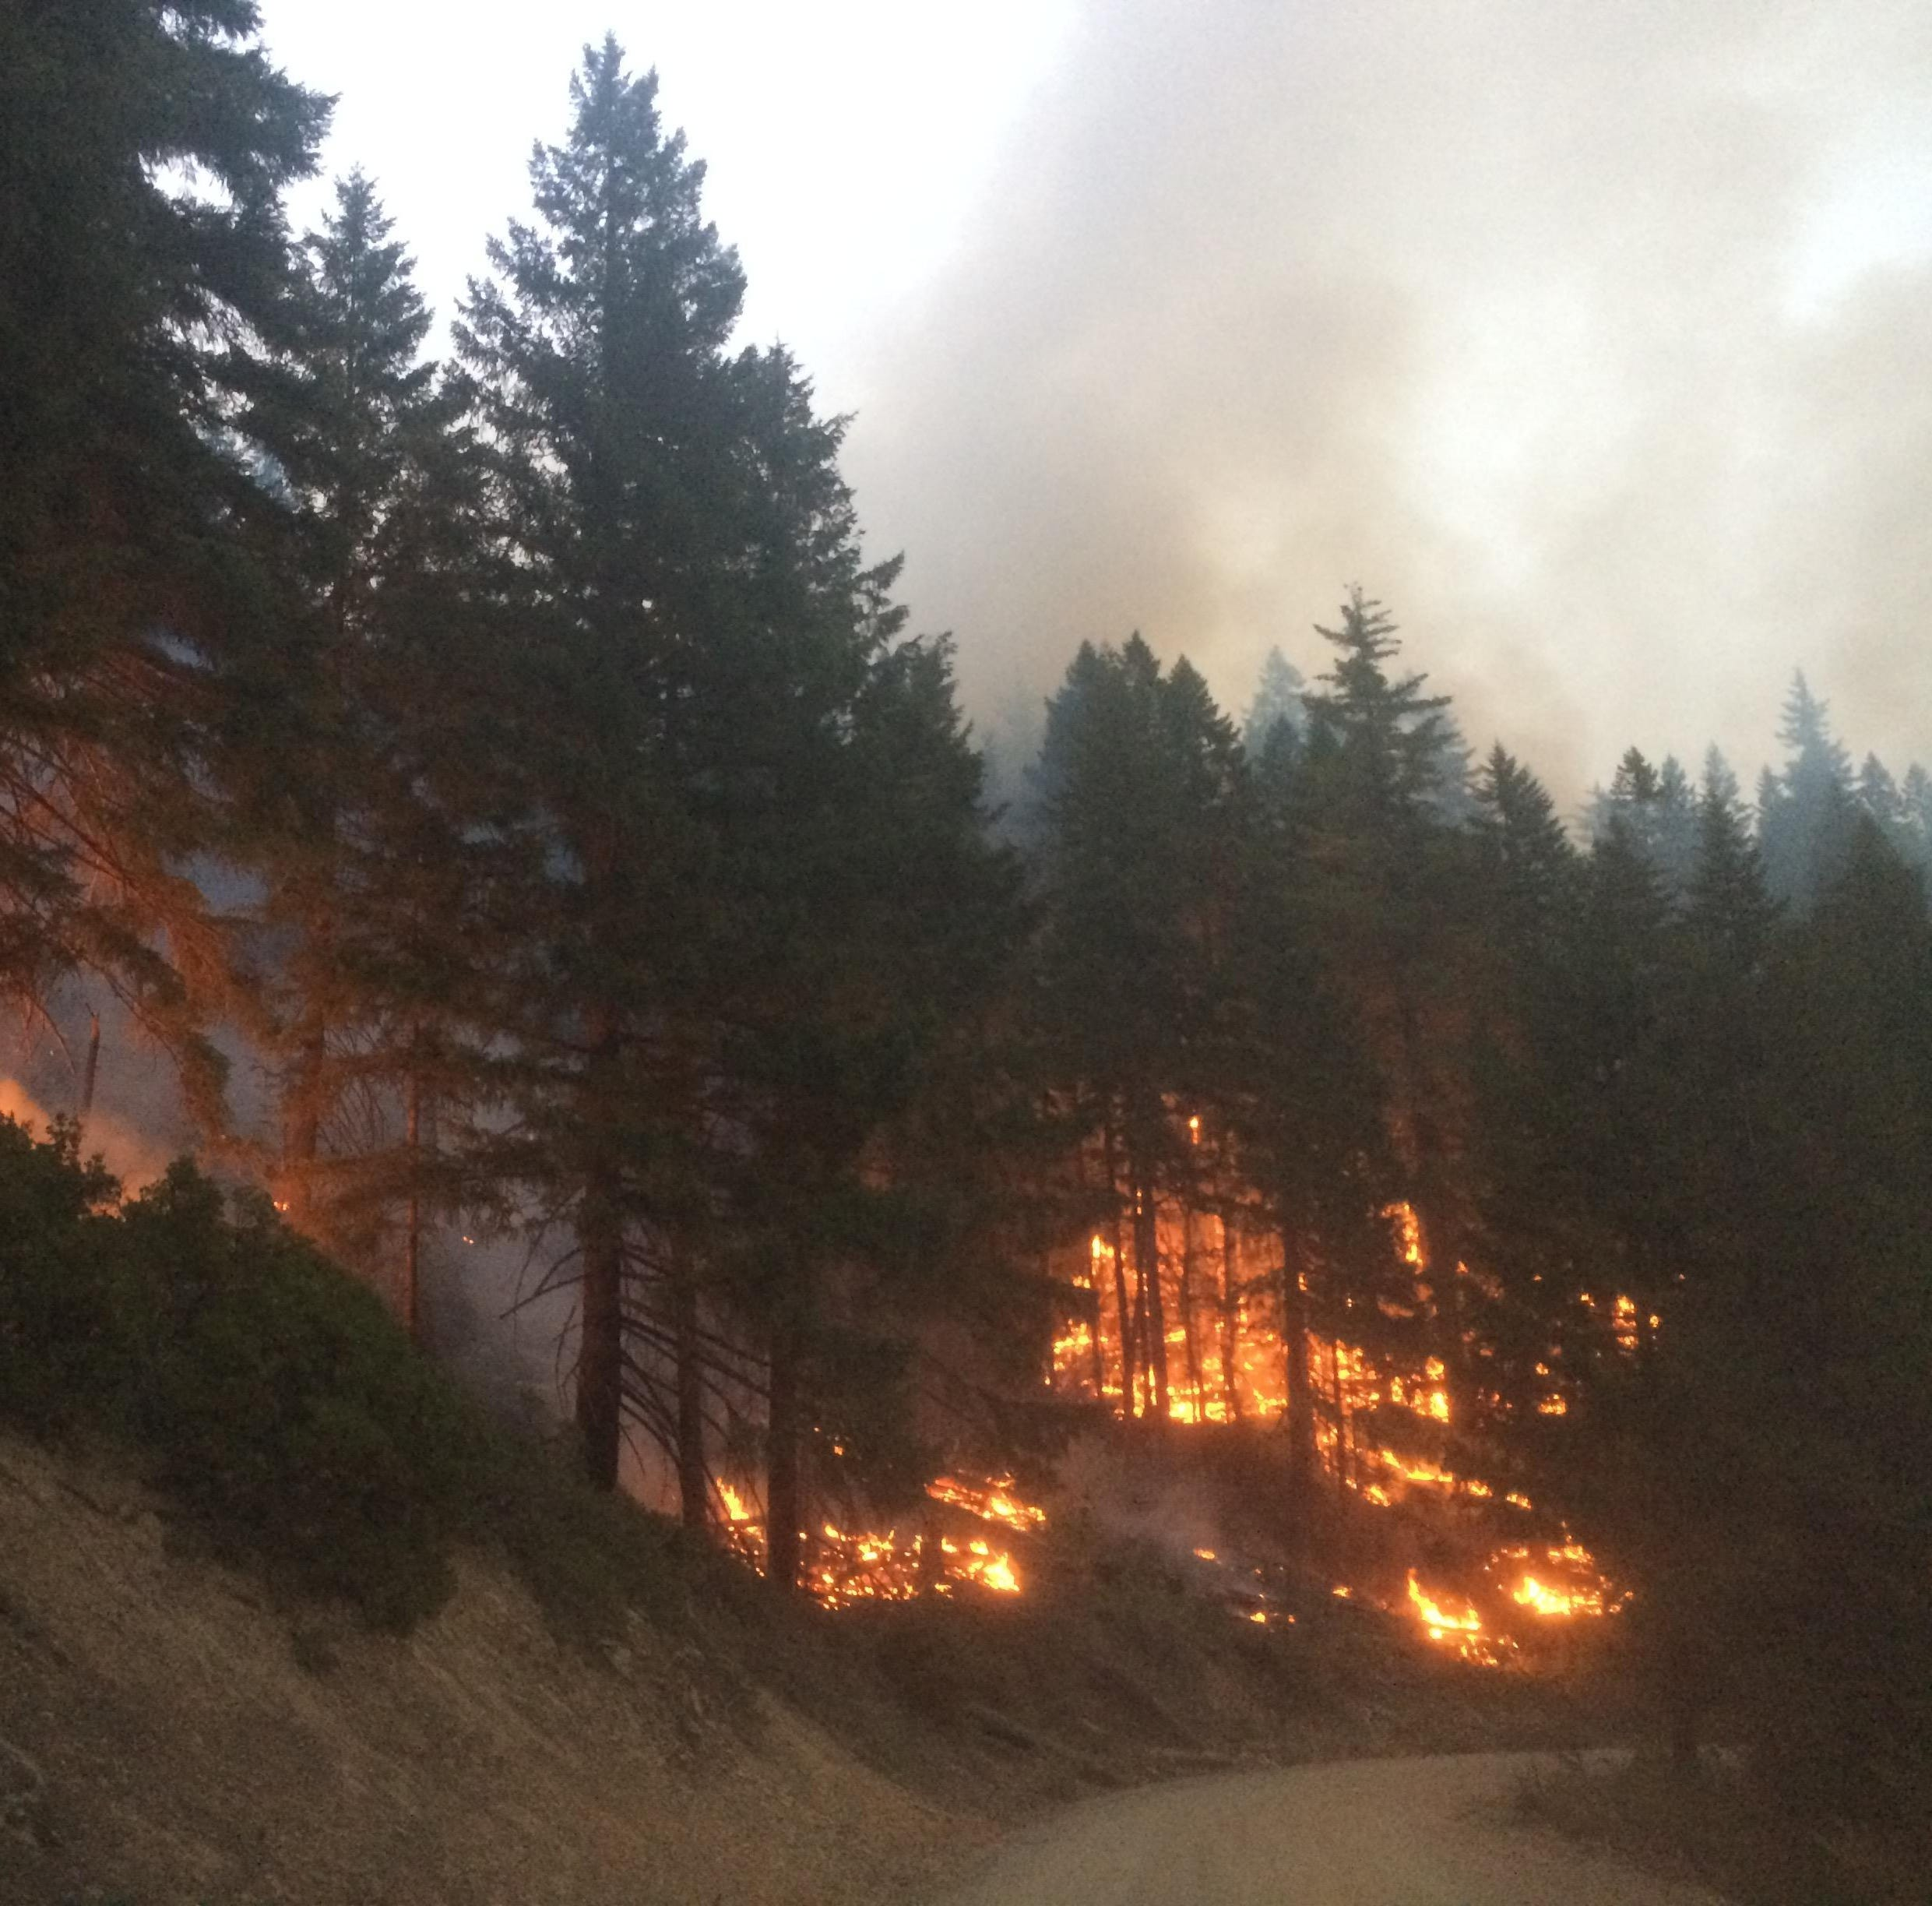 Oregon wildfires: Forecast for lightning worries firefighters; Klondike fire swells to 59,000 acres